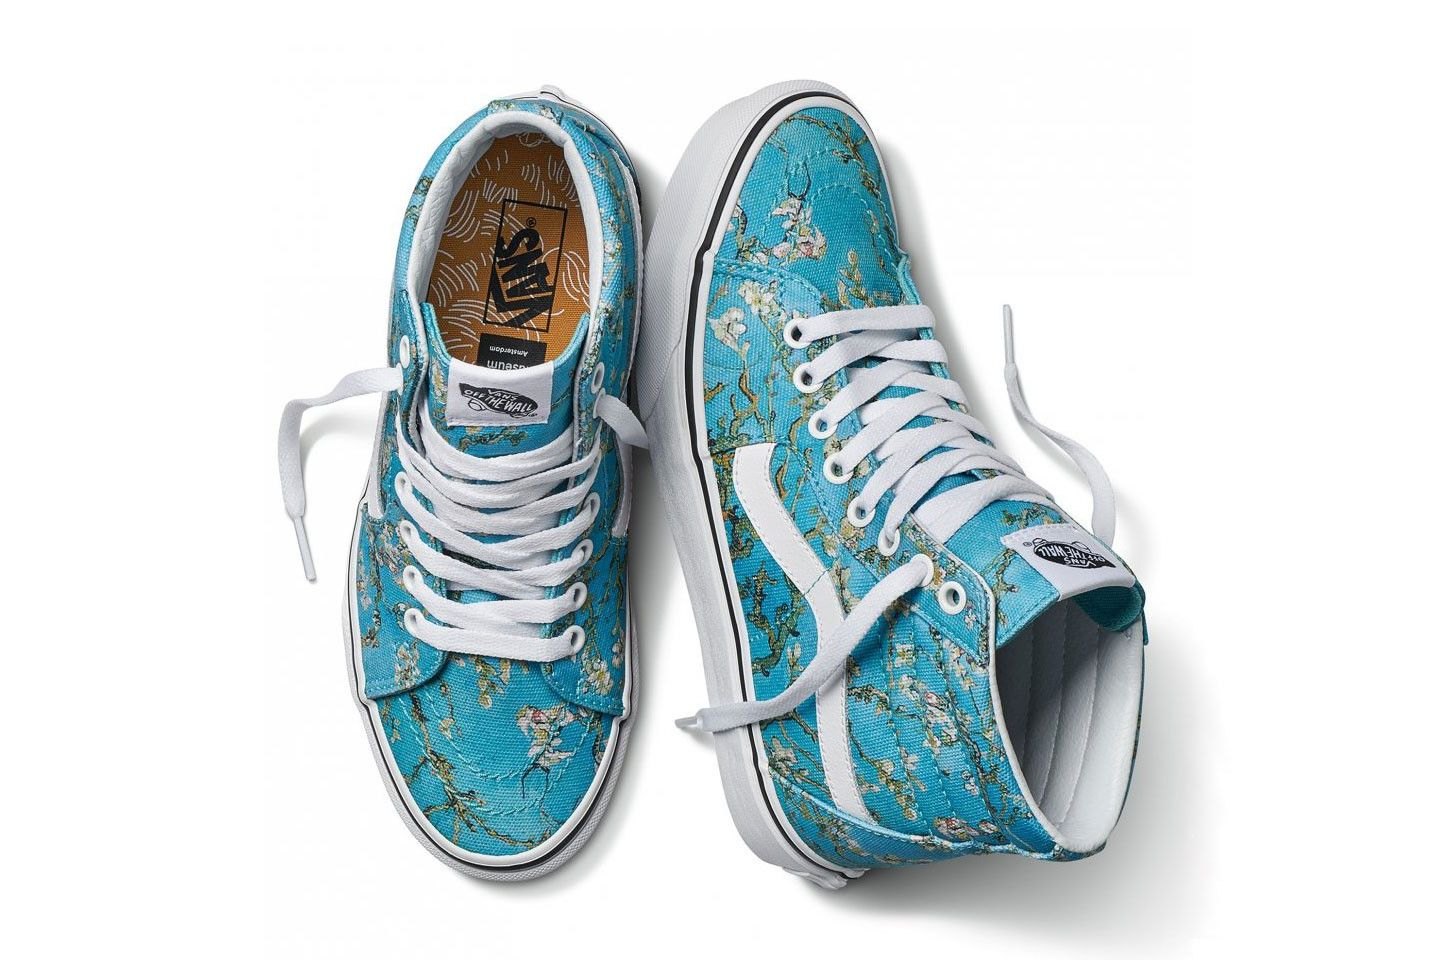 7bad19f722 vincent van gogh museum vans collaboration artwork sneaker shoe sk8 hi blue  white almond blossom flower